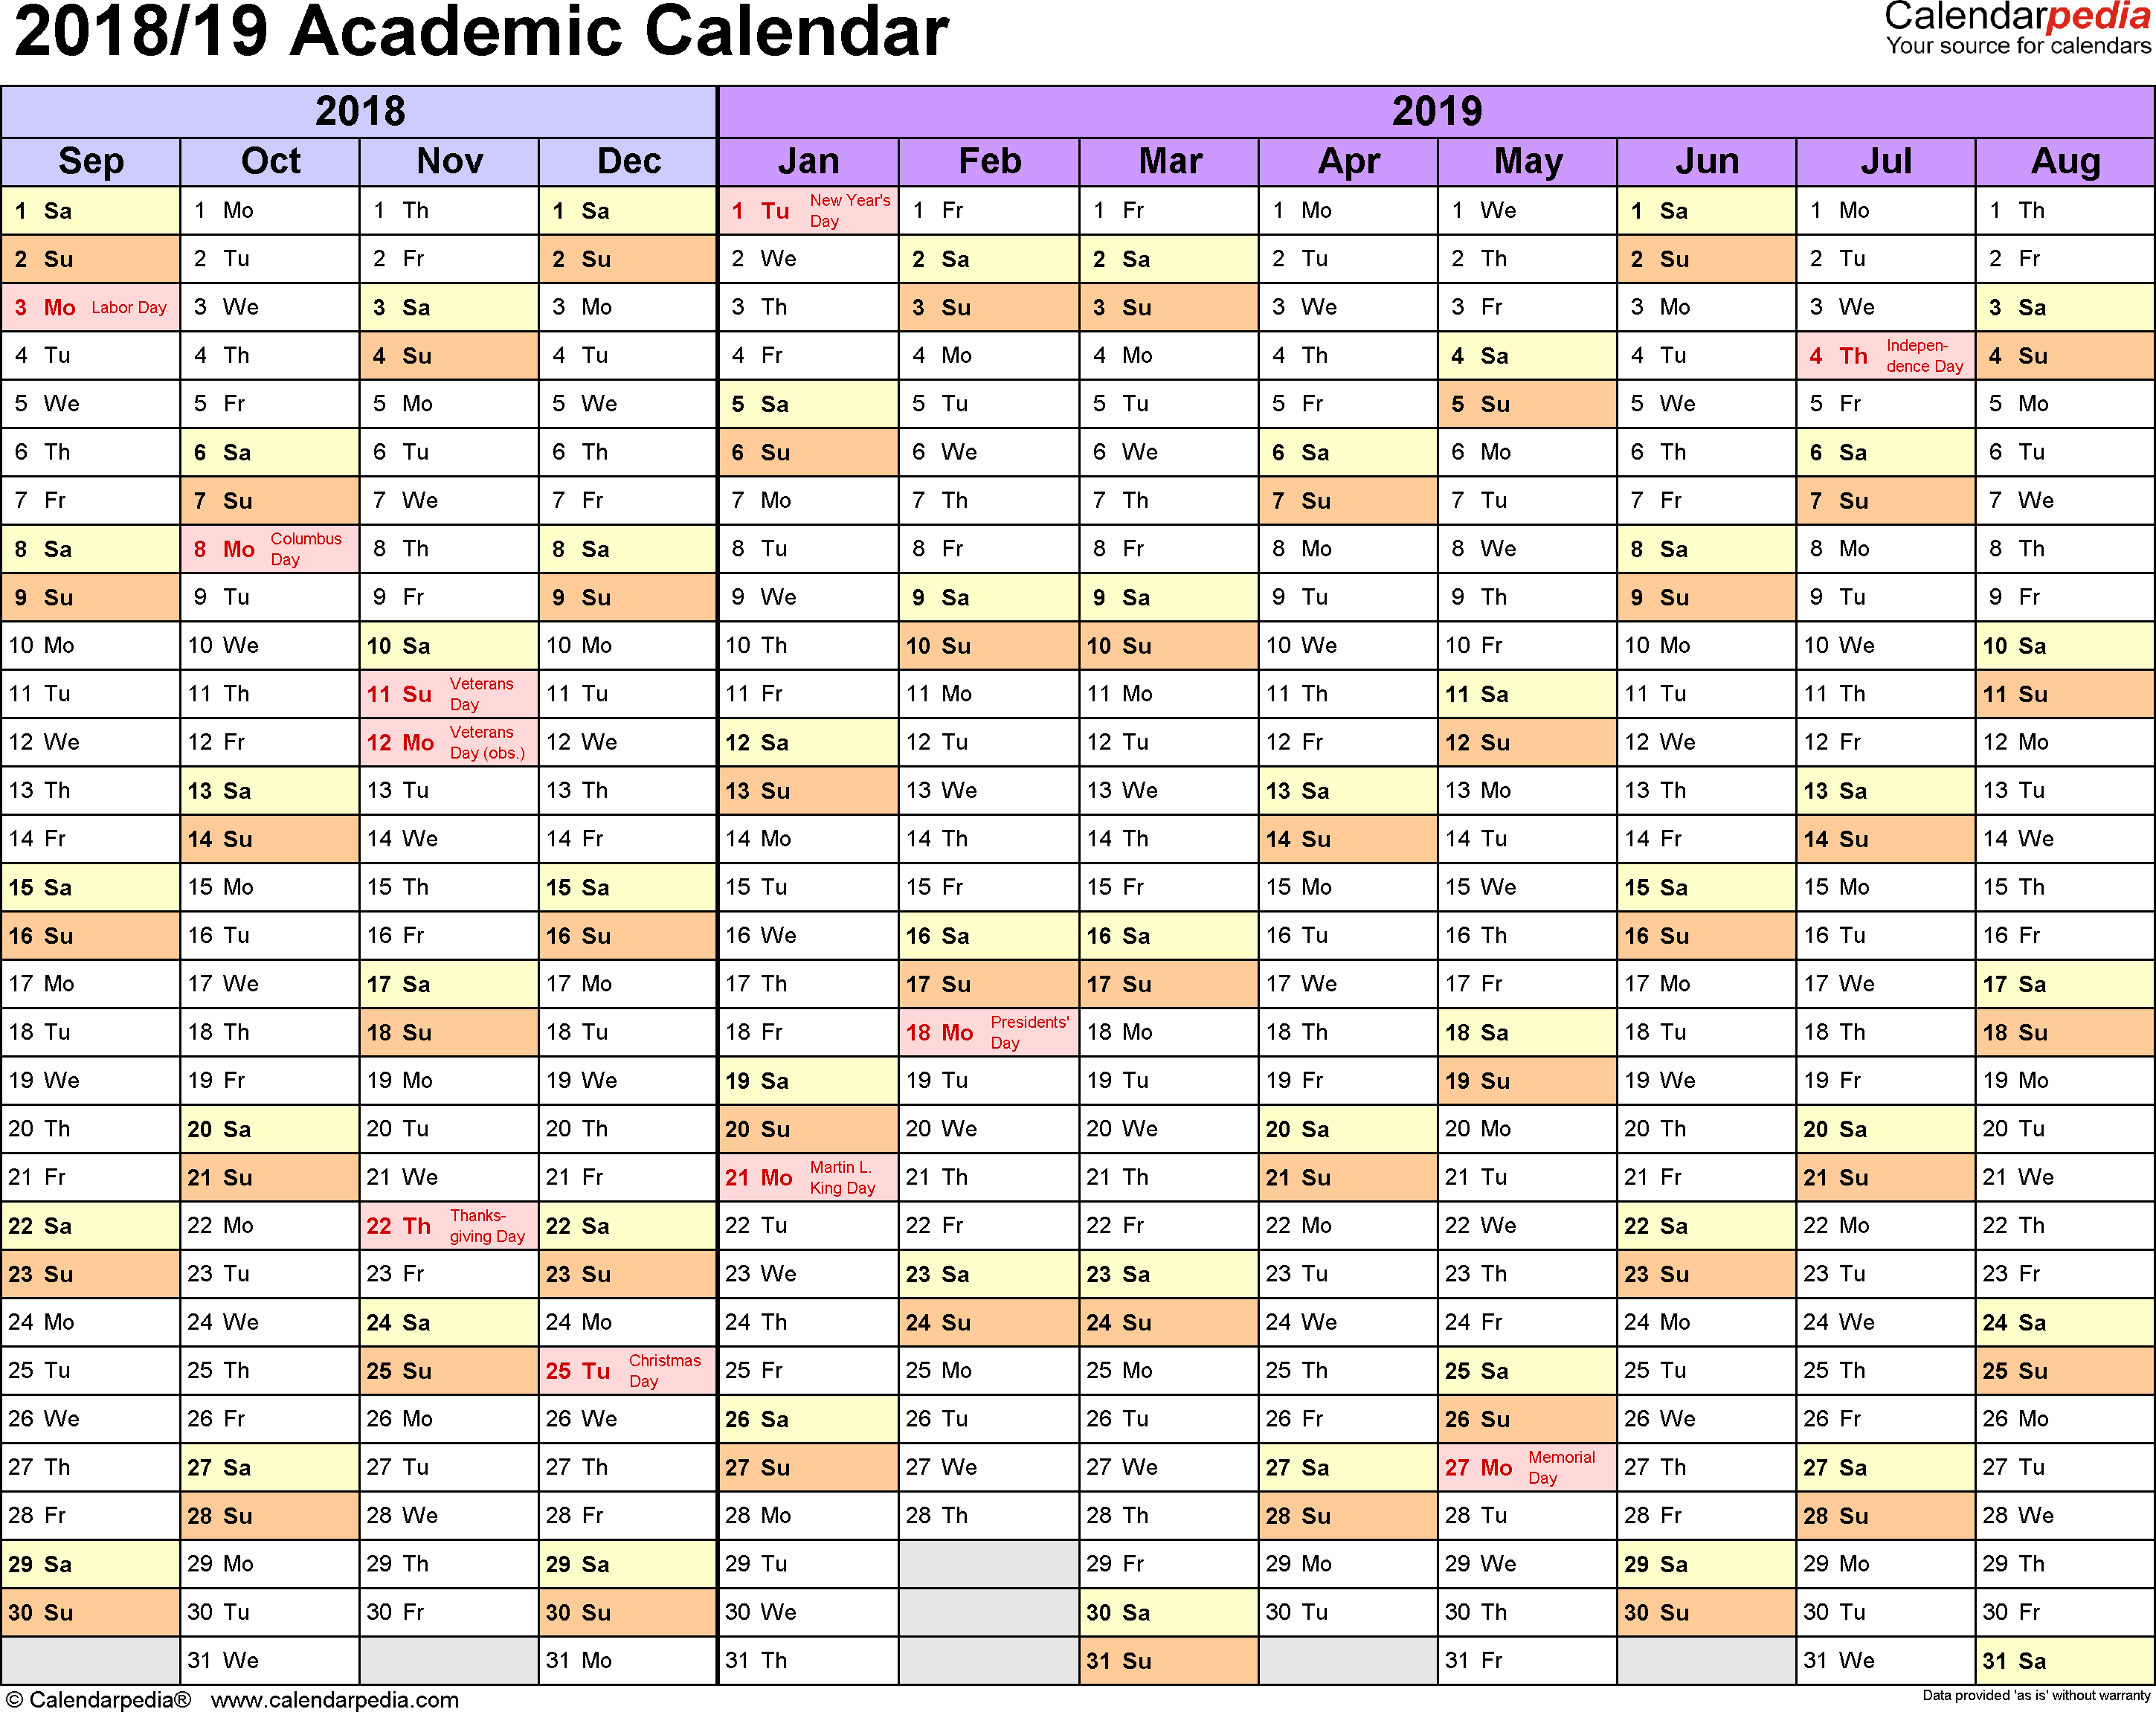 Template 1: Academic calendar 2018/19 for PDF, landscape orientation, months horizontally, 1 page